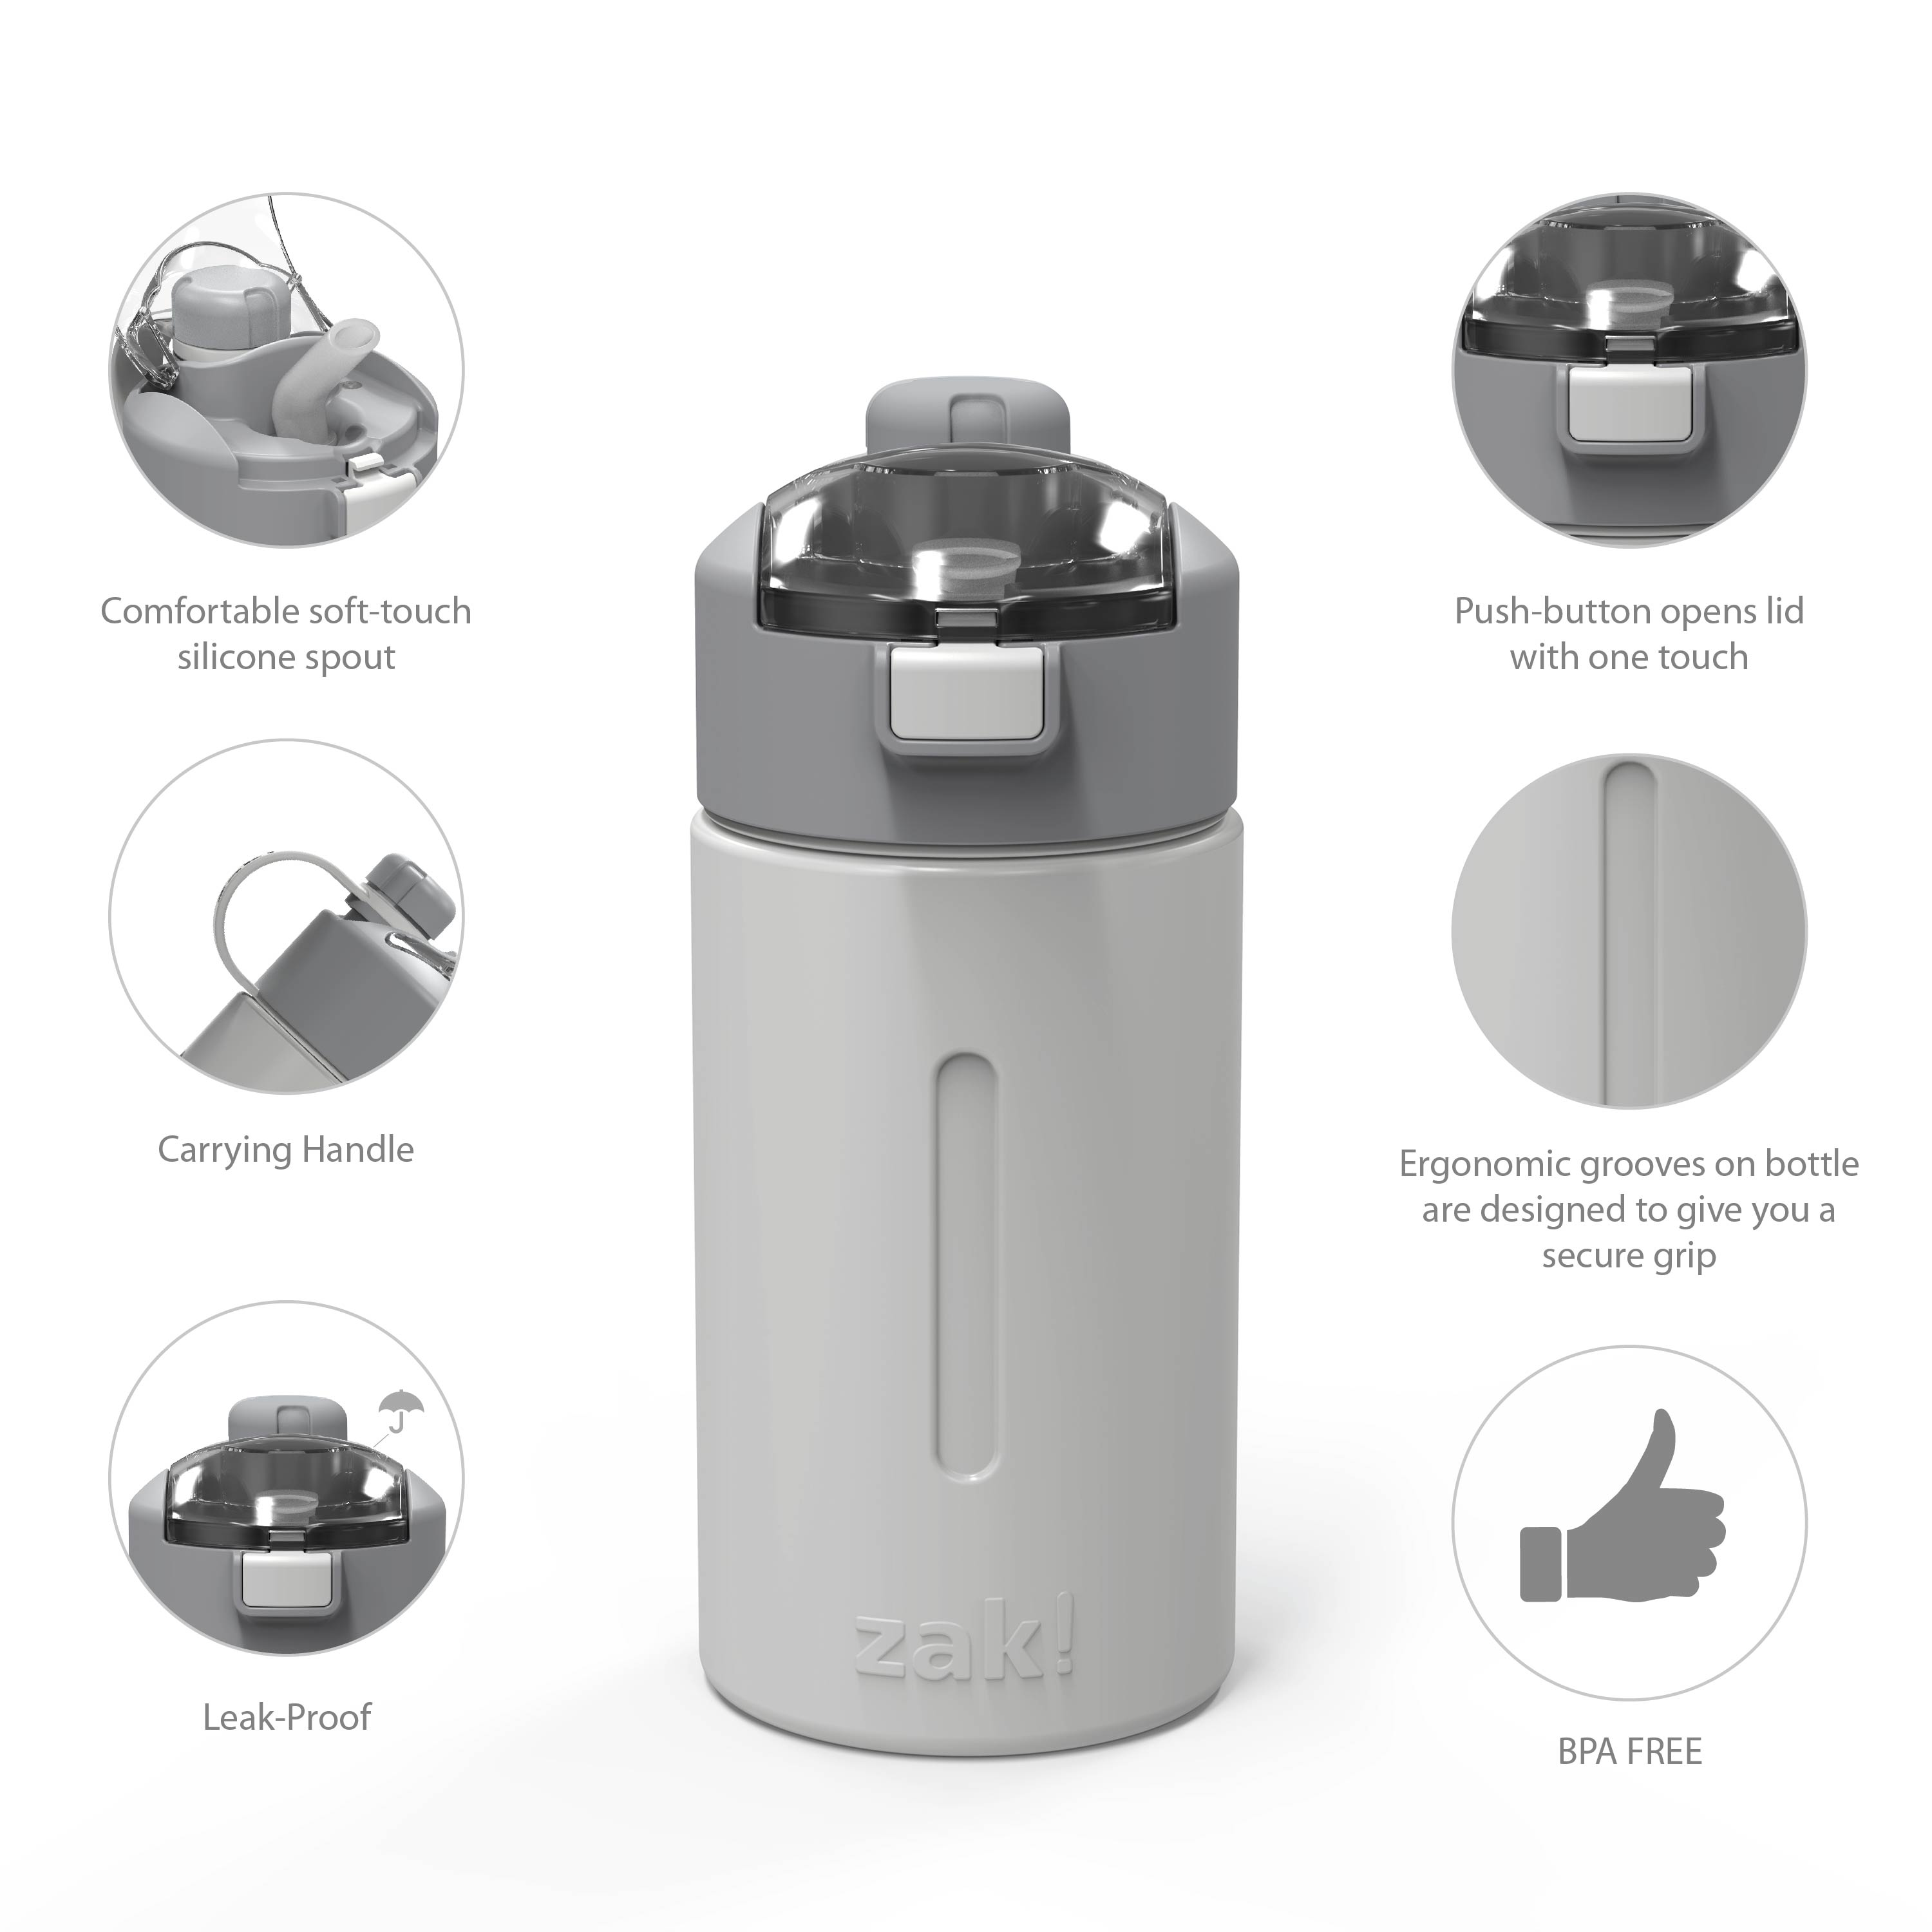 Genesis 12 ounce Vacuum Insulated Stainless Steel Tumbler, Gray slideshow image 7